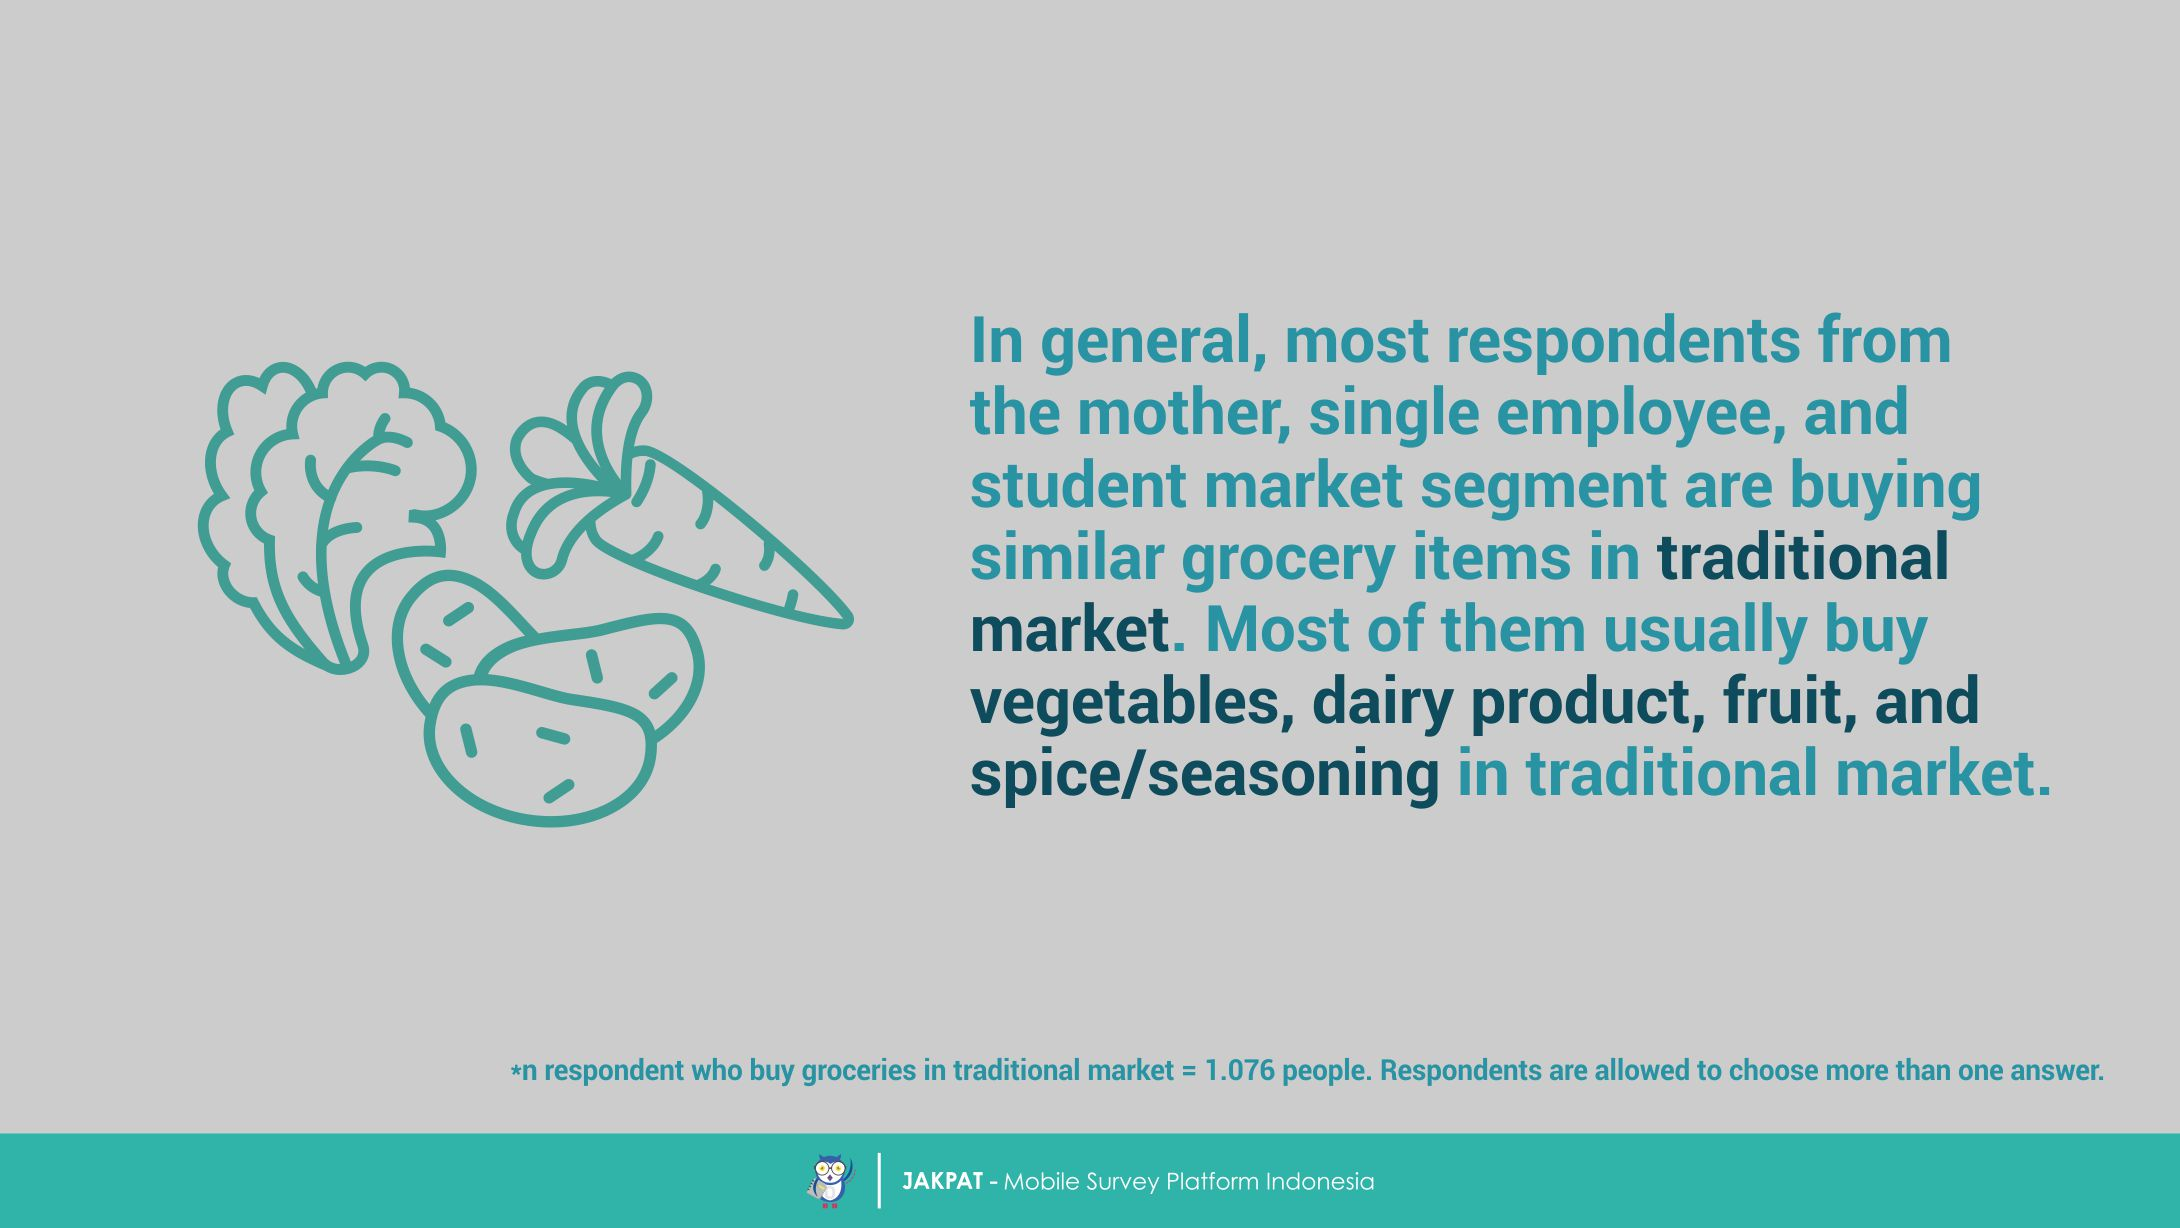 10 - GROCERY SHOPPING BASED ON OCCUPATION